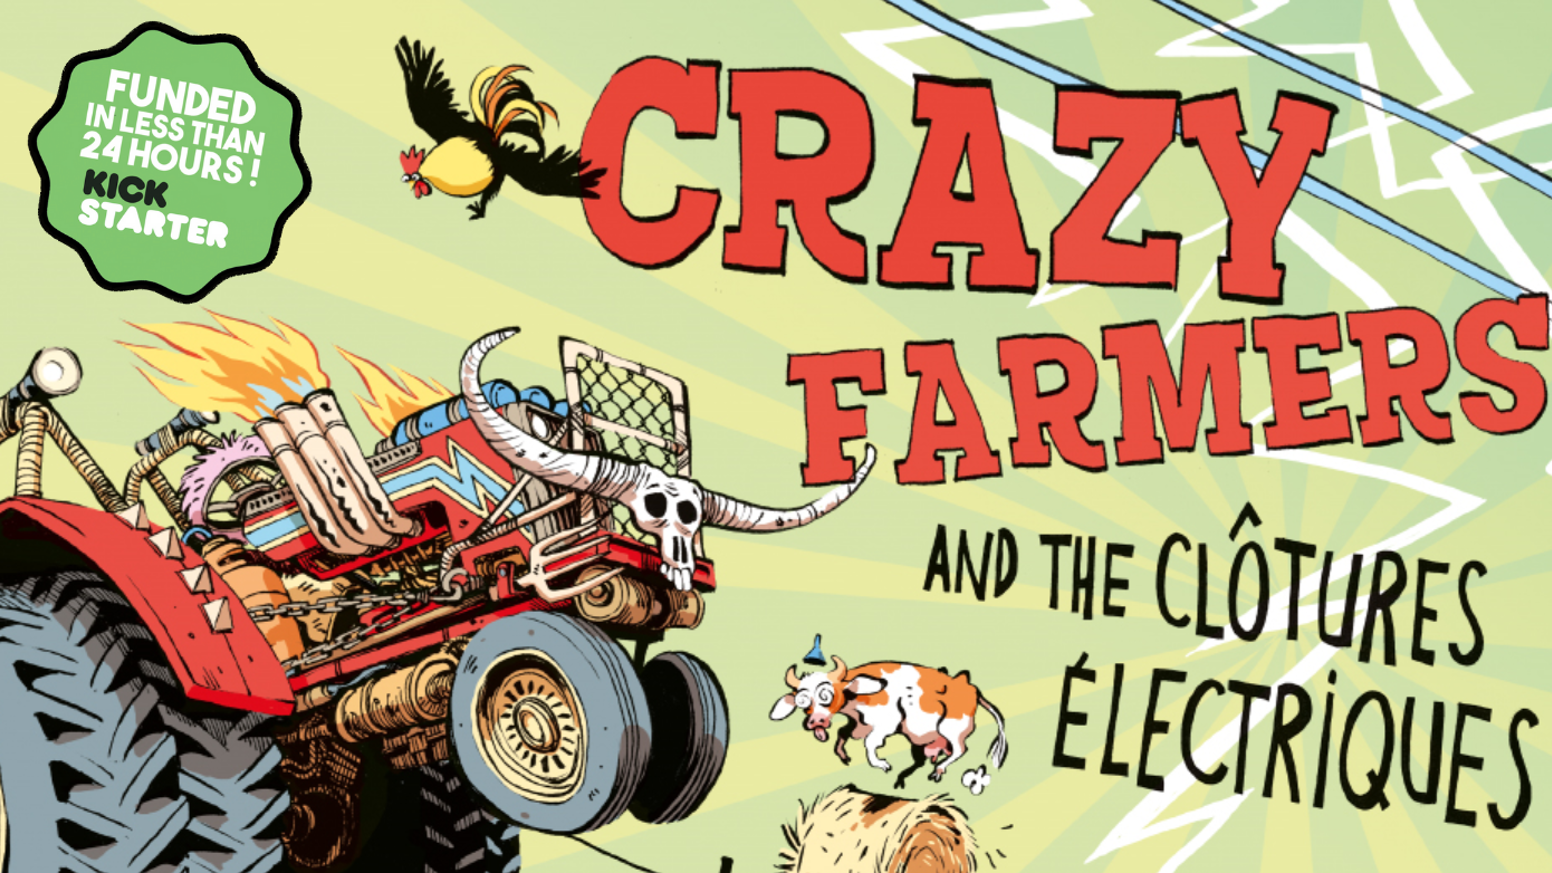 A fun & wacky strategic territory conquest board game where farmers fight each other on their custom tractors to expand their fields.